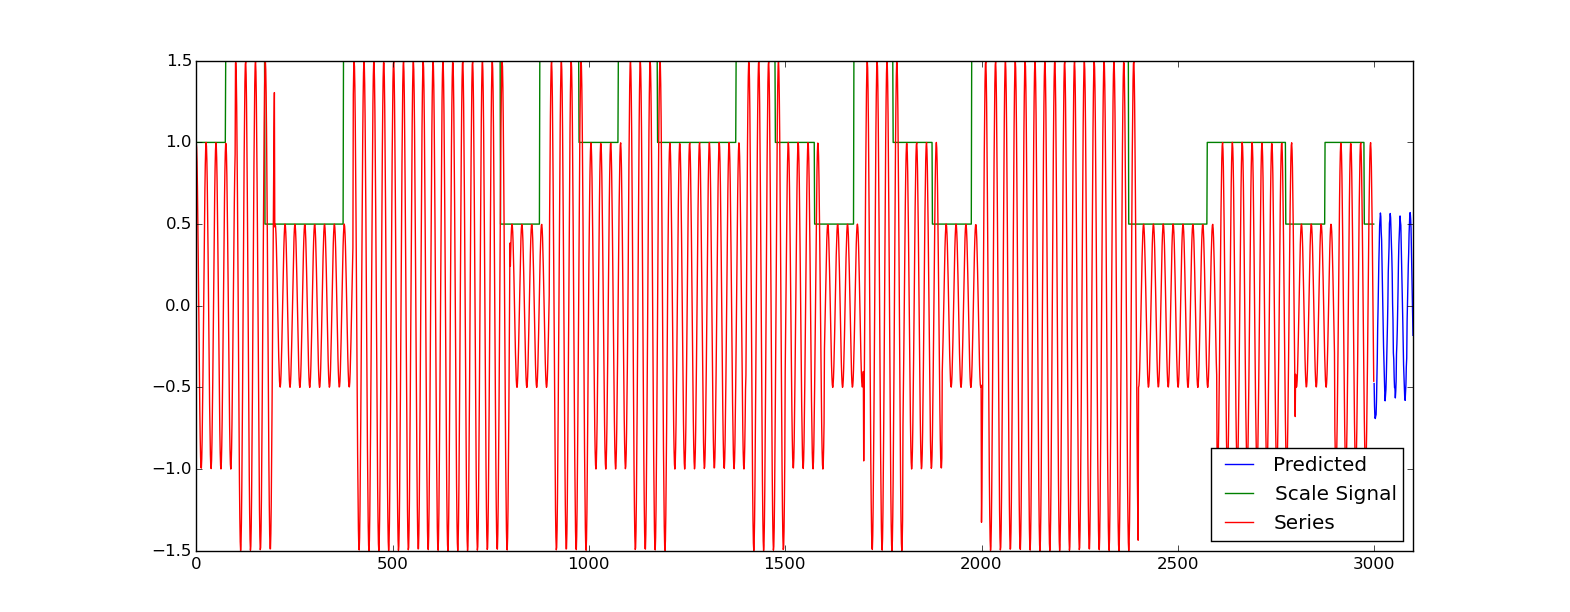 Time series prediction with multiple sequences input - LSTM